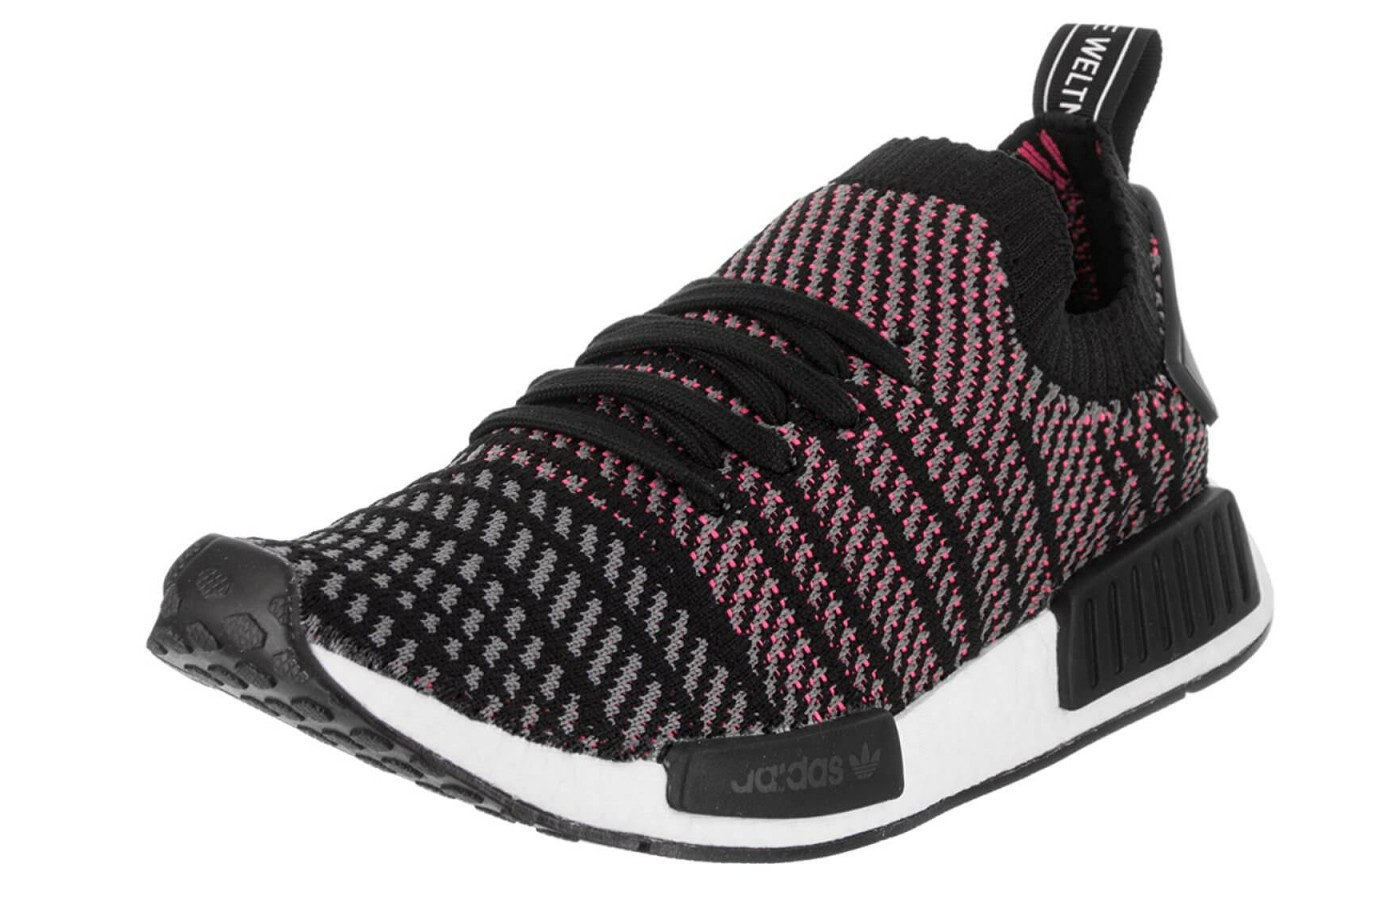 b235e6ad46004c The Adidas NMD R1 Stlt Primeknit features a Primeknit upper ...